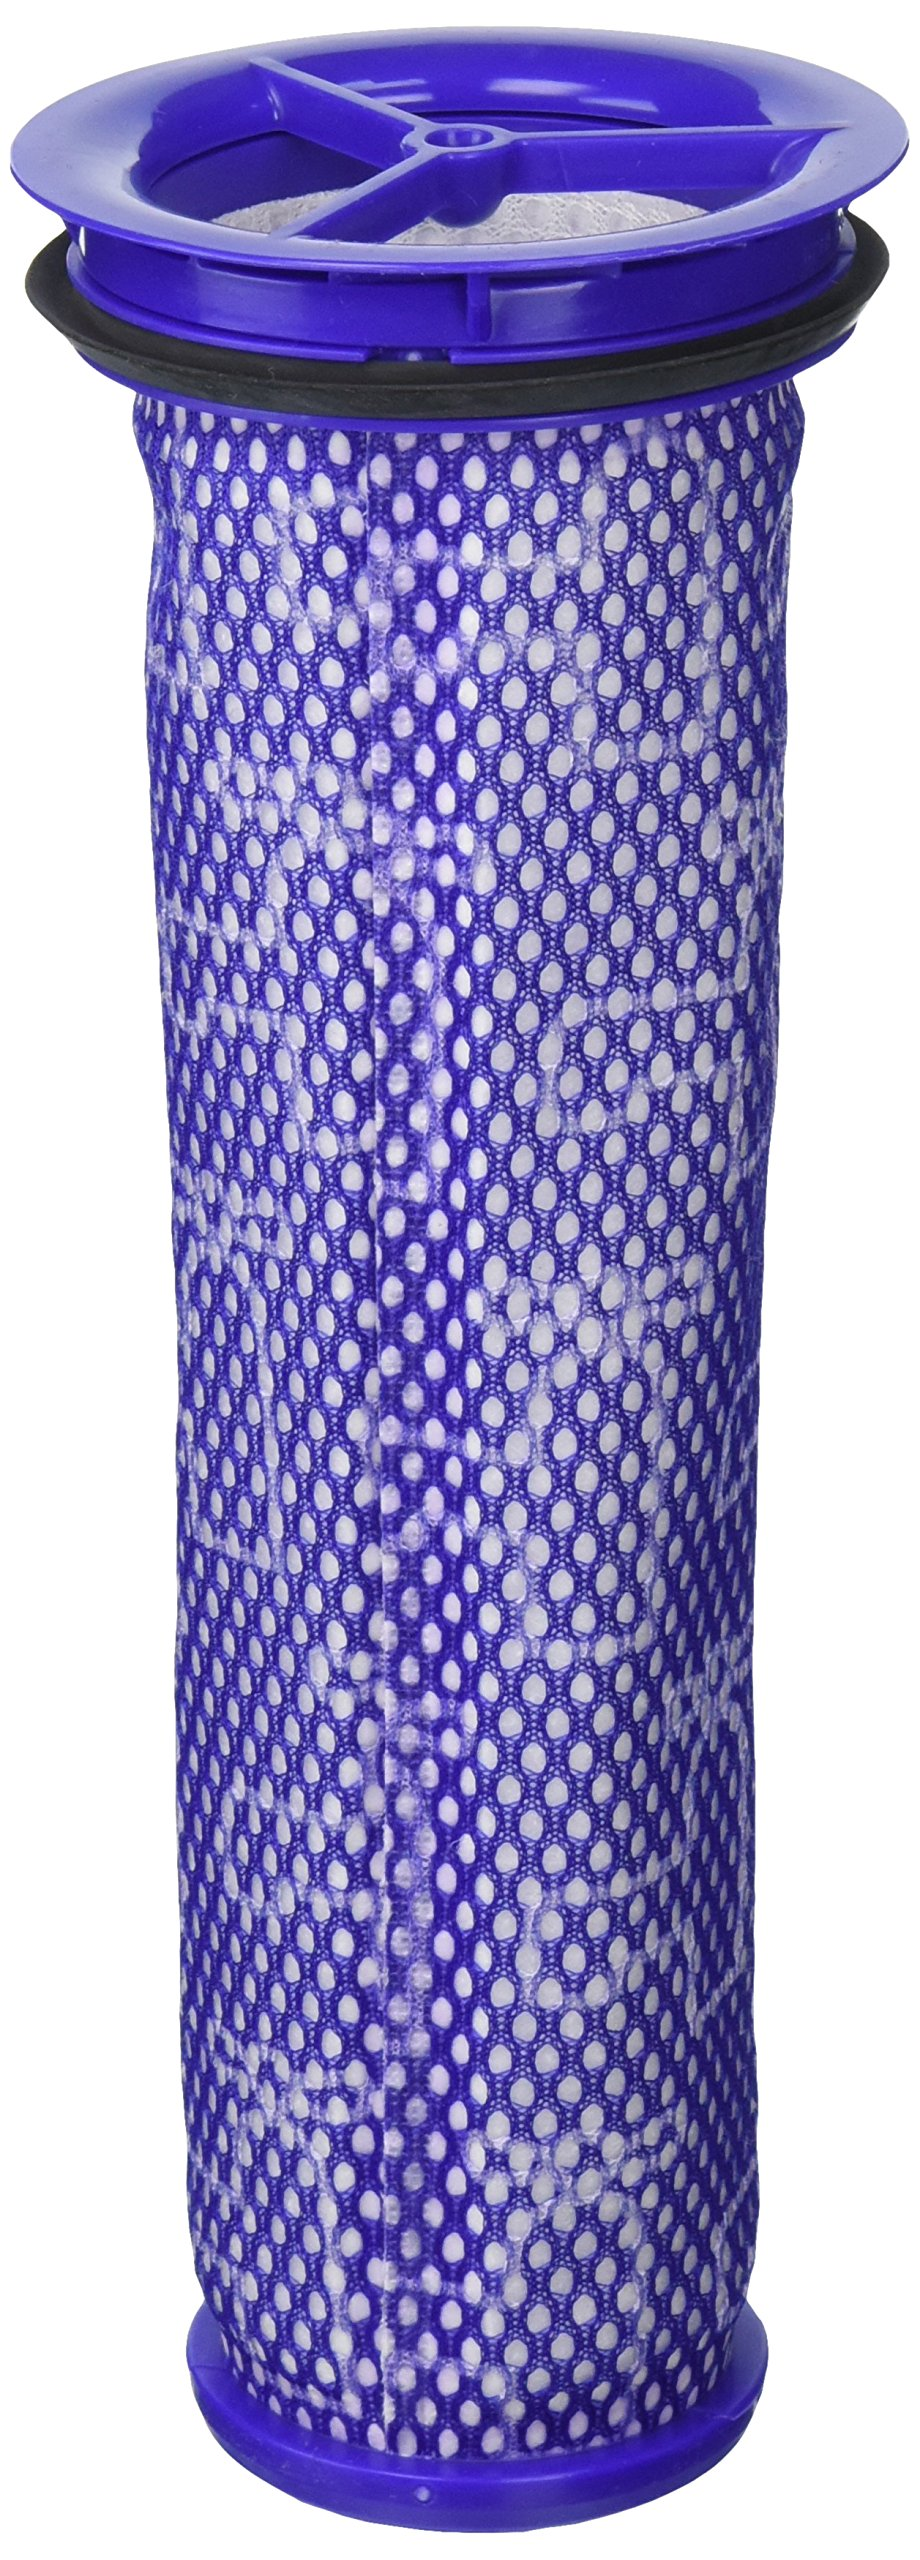 Dyson Filter, Premotor Dc41 Dc65 Washable Rinsable Tube by Dyson